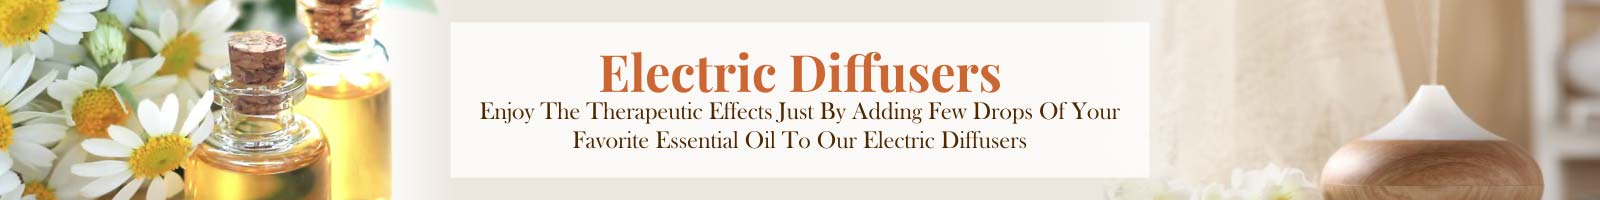 Electric Diffusers